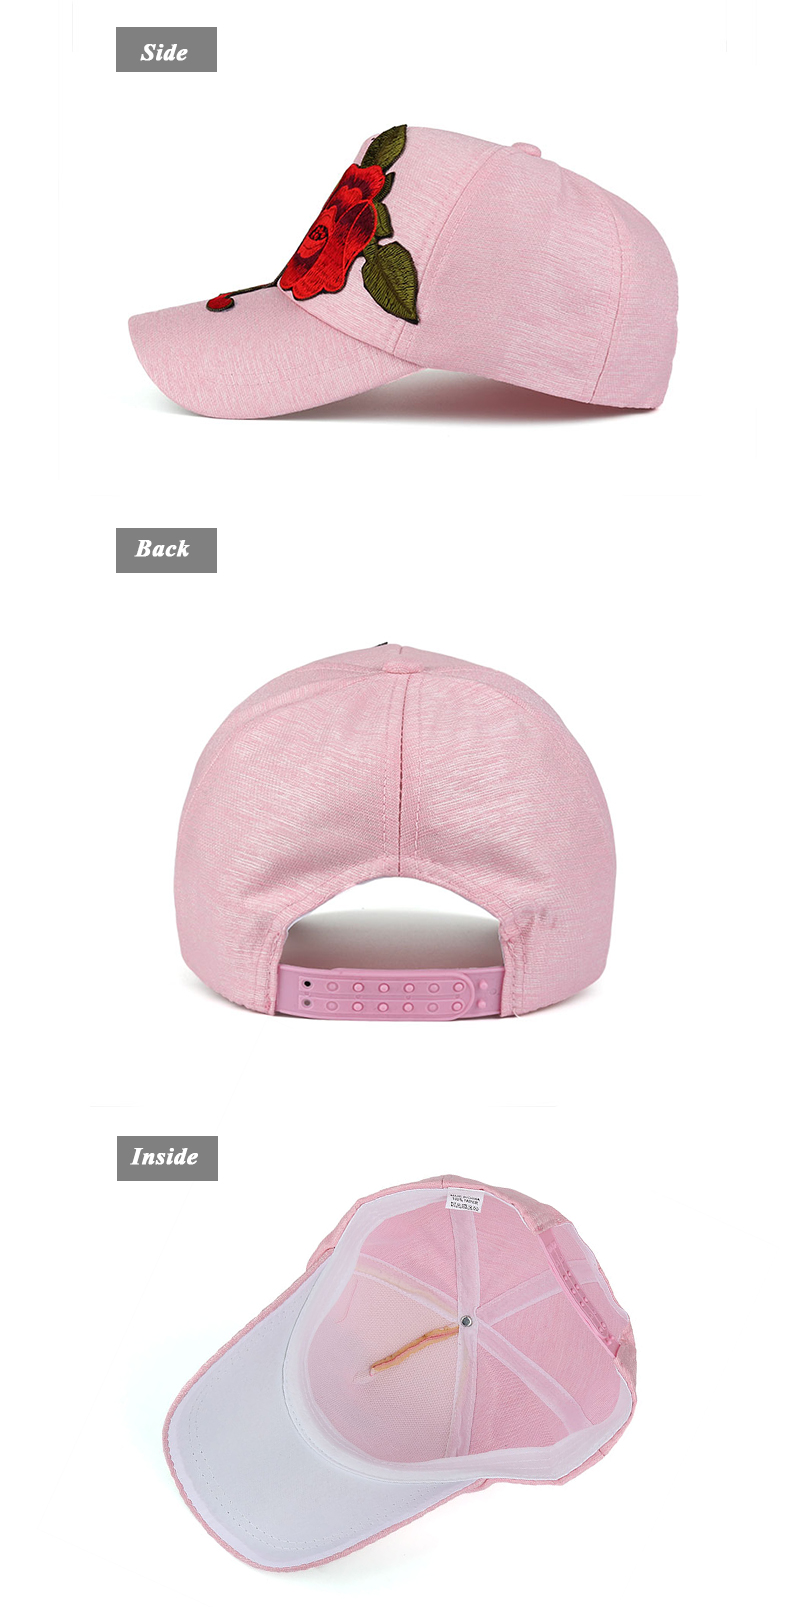 Large Flower Embroidered Snapback Cap - Side, Rear and Inside Views